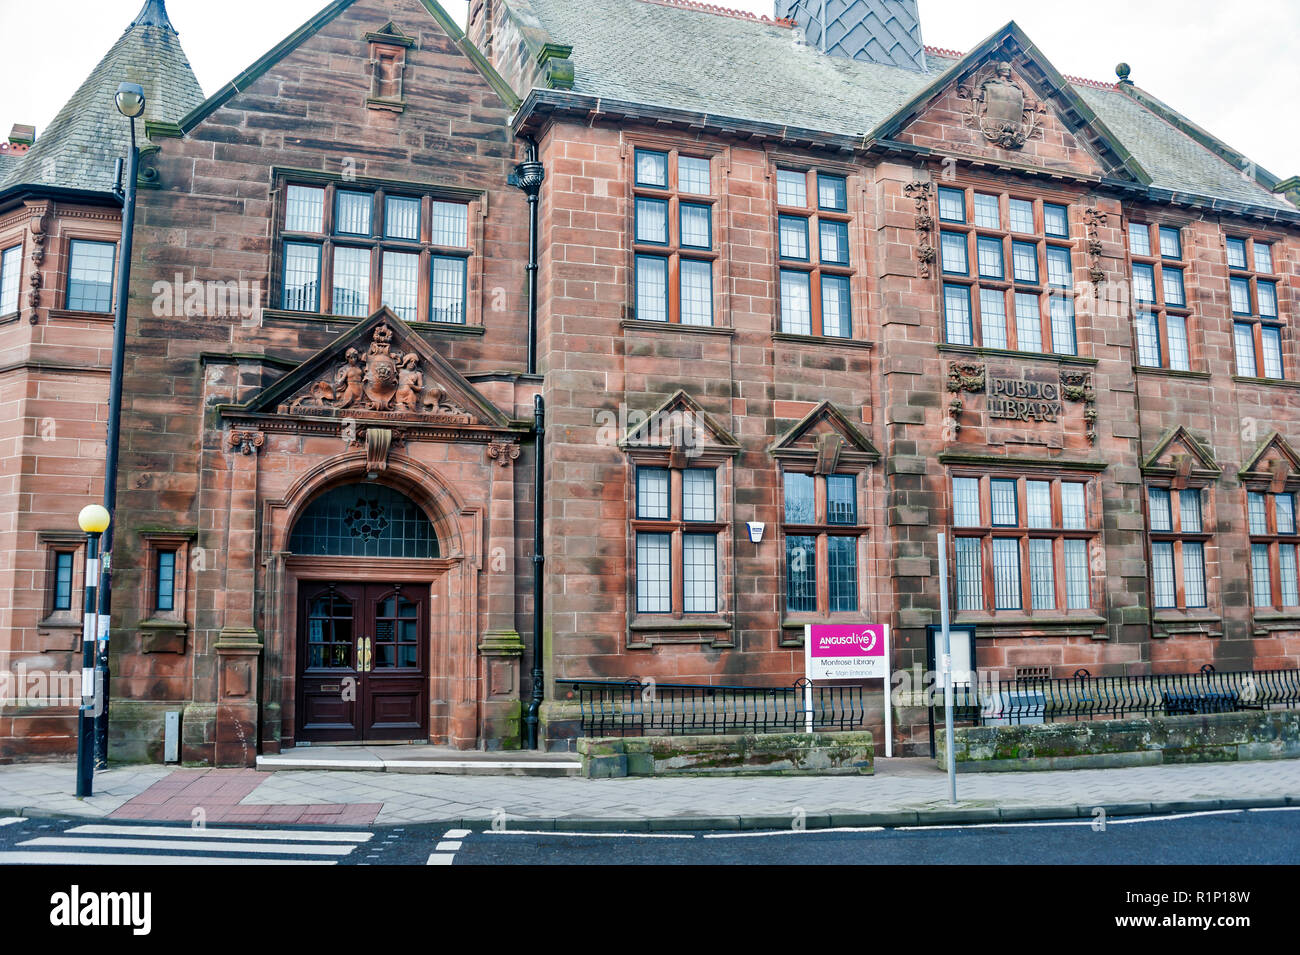 Montrose Public Library, Angus, Scotland, UK - Stock Image